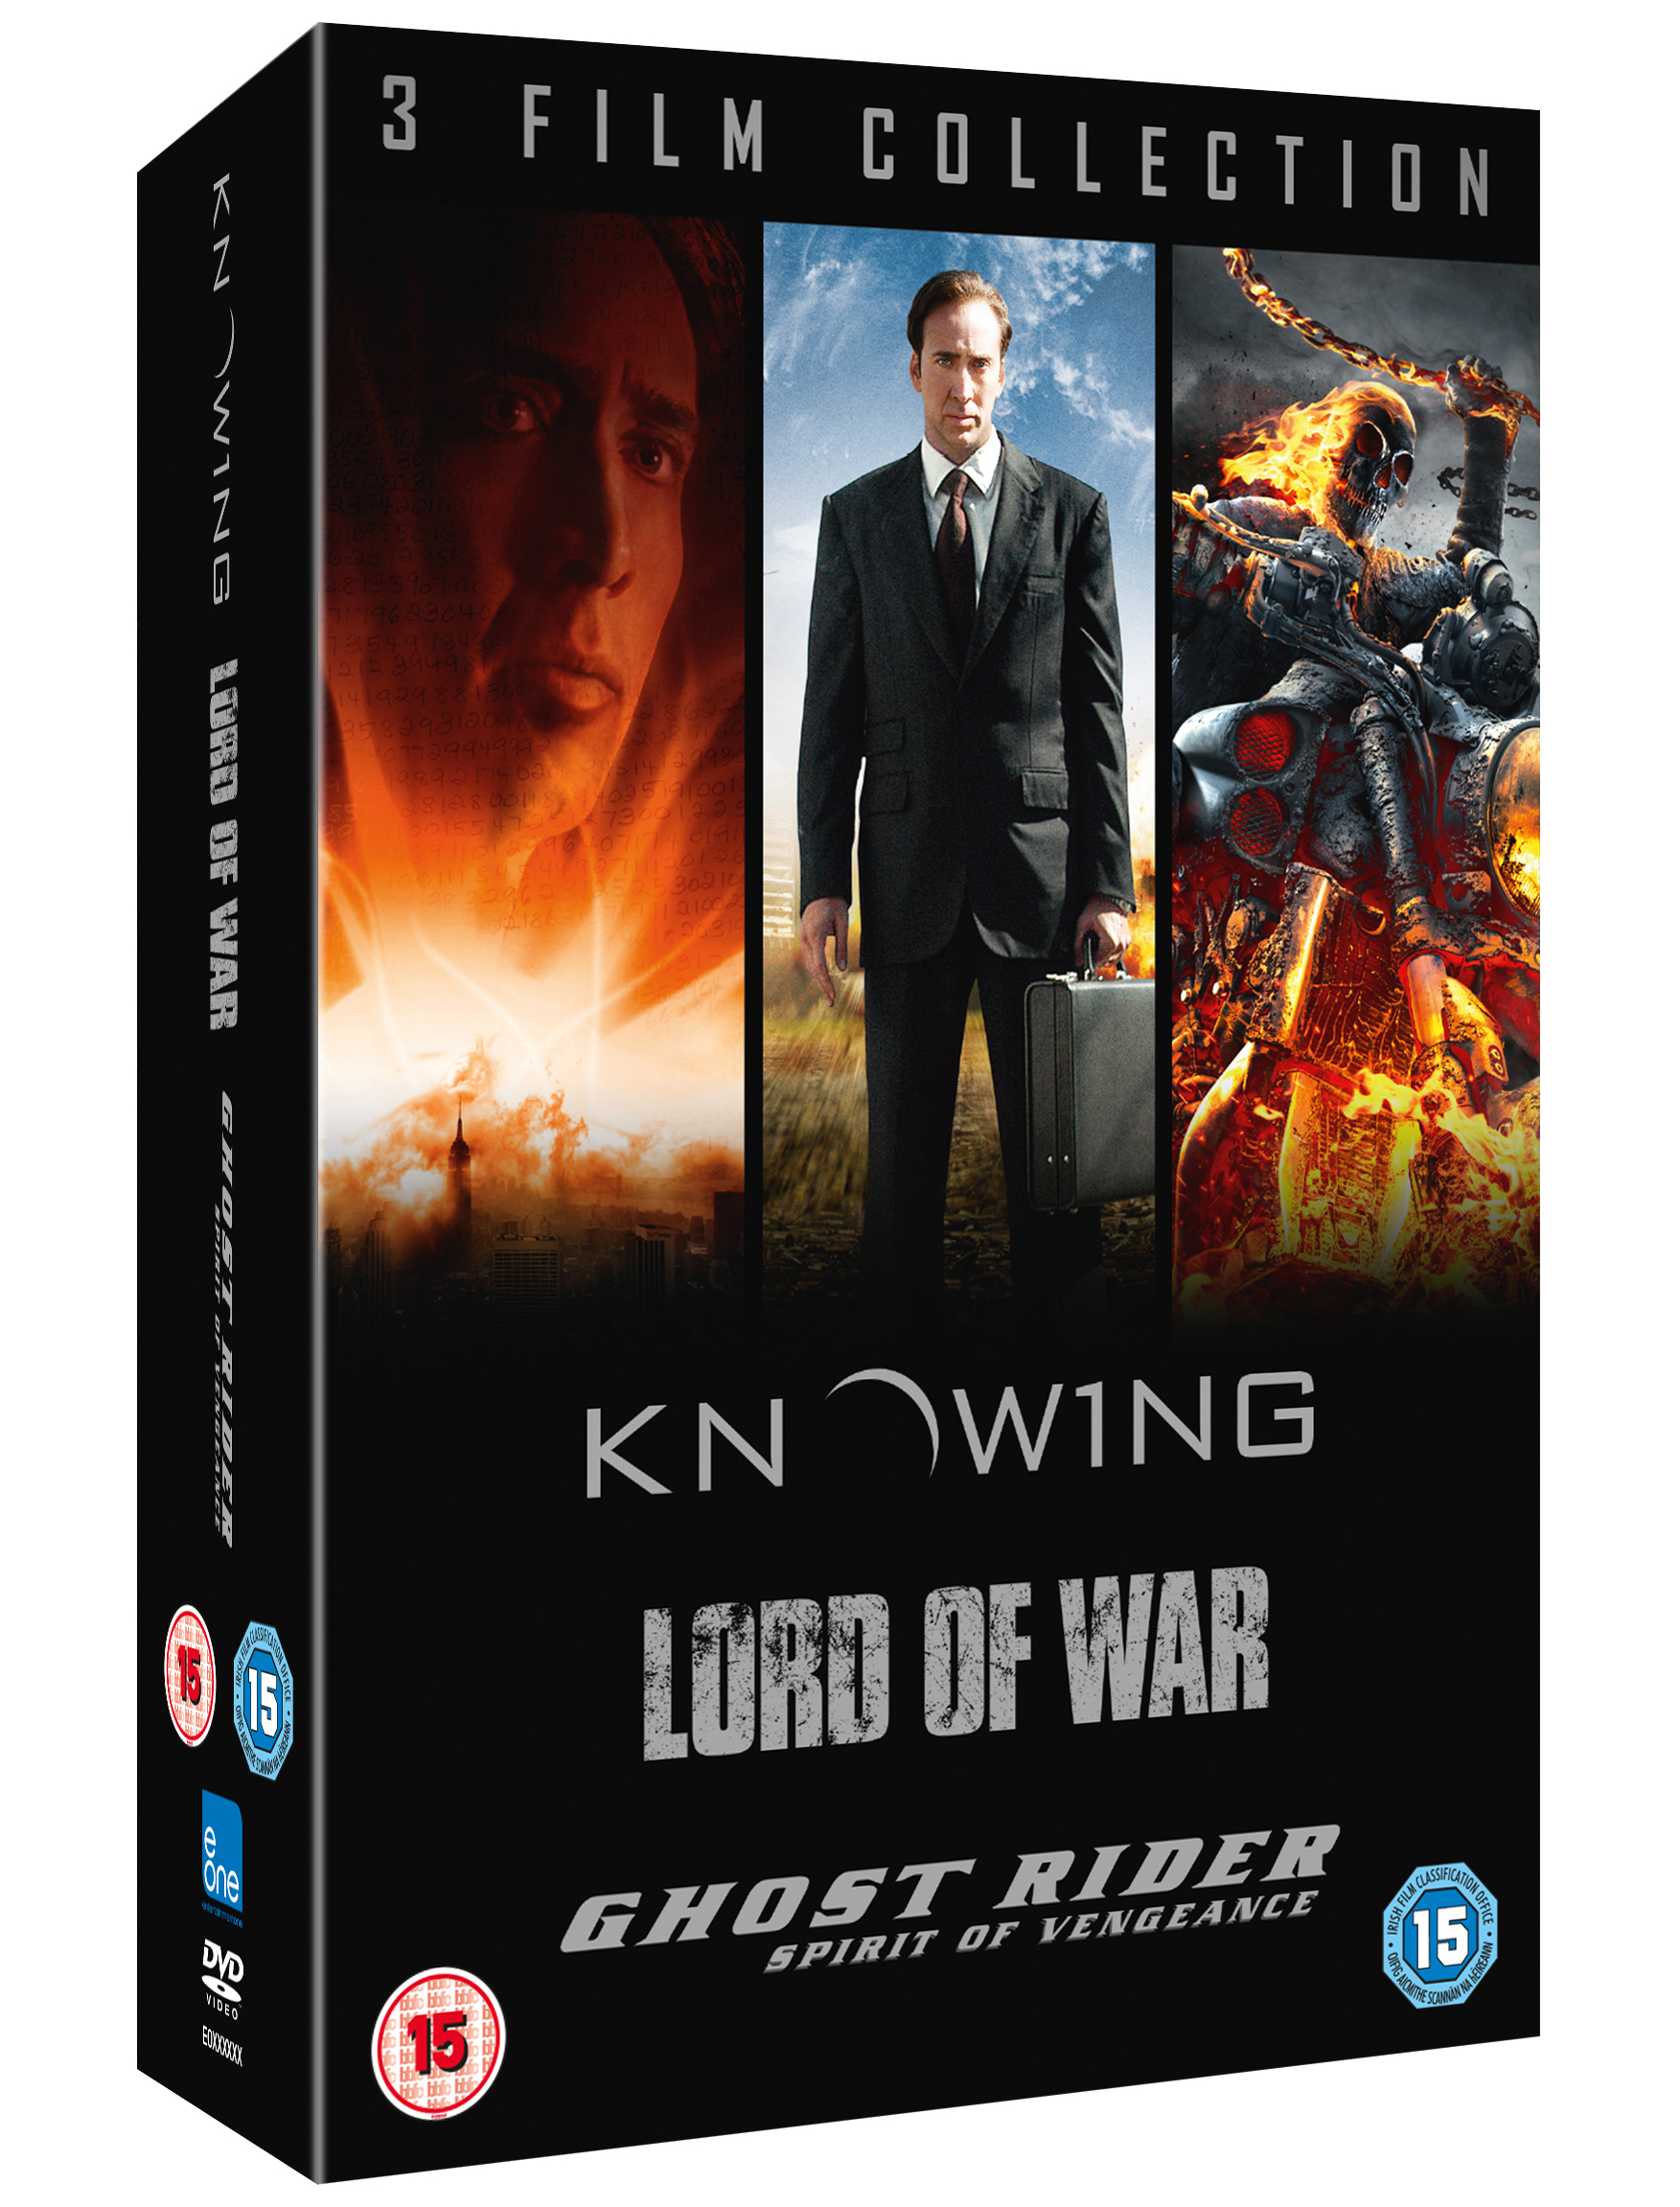 KNOWING:LORD OF WAR: GHOST RIDER DVD Boxset